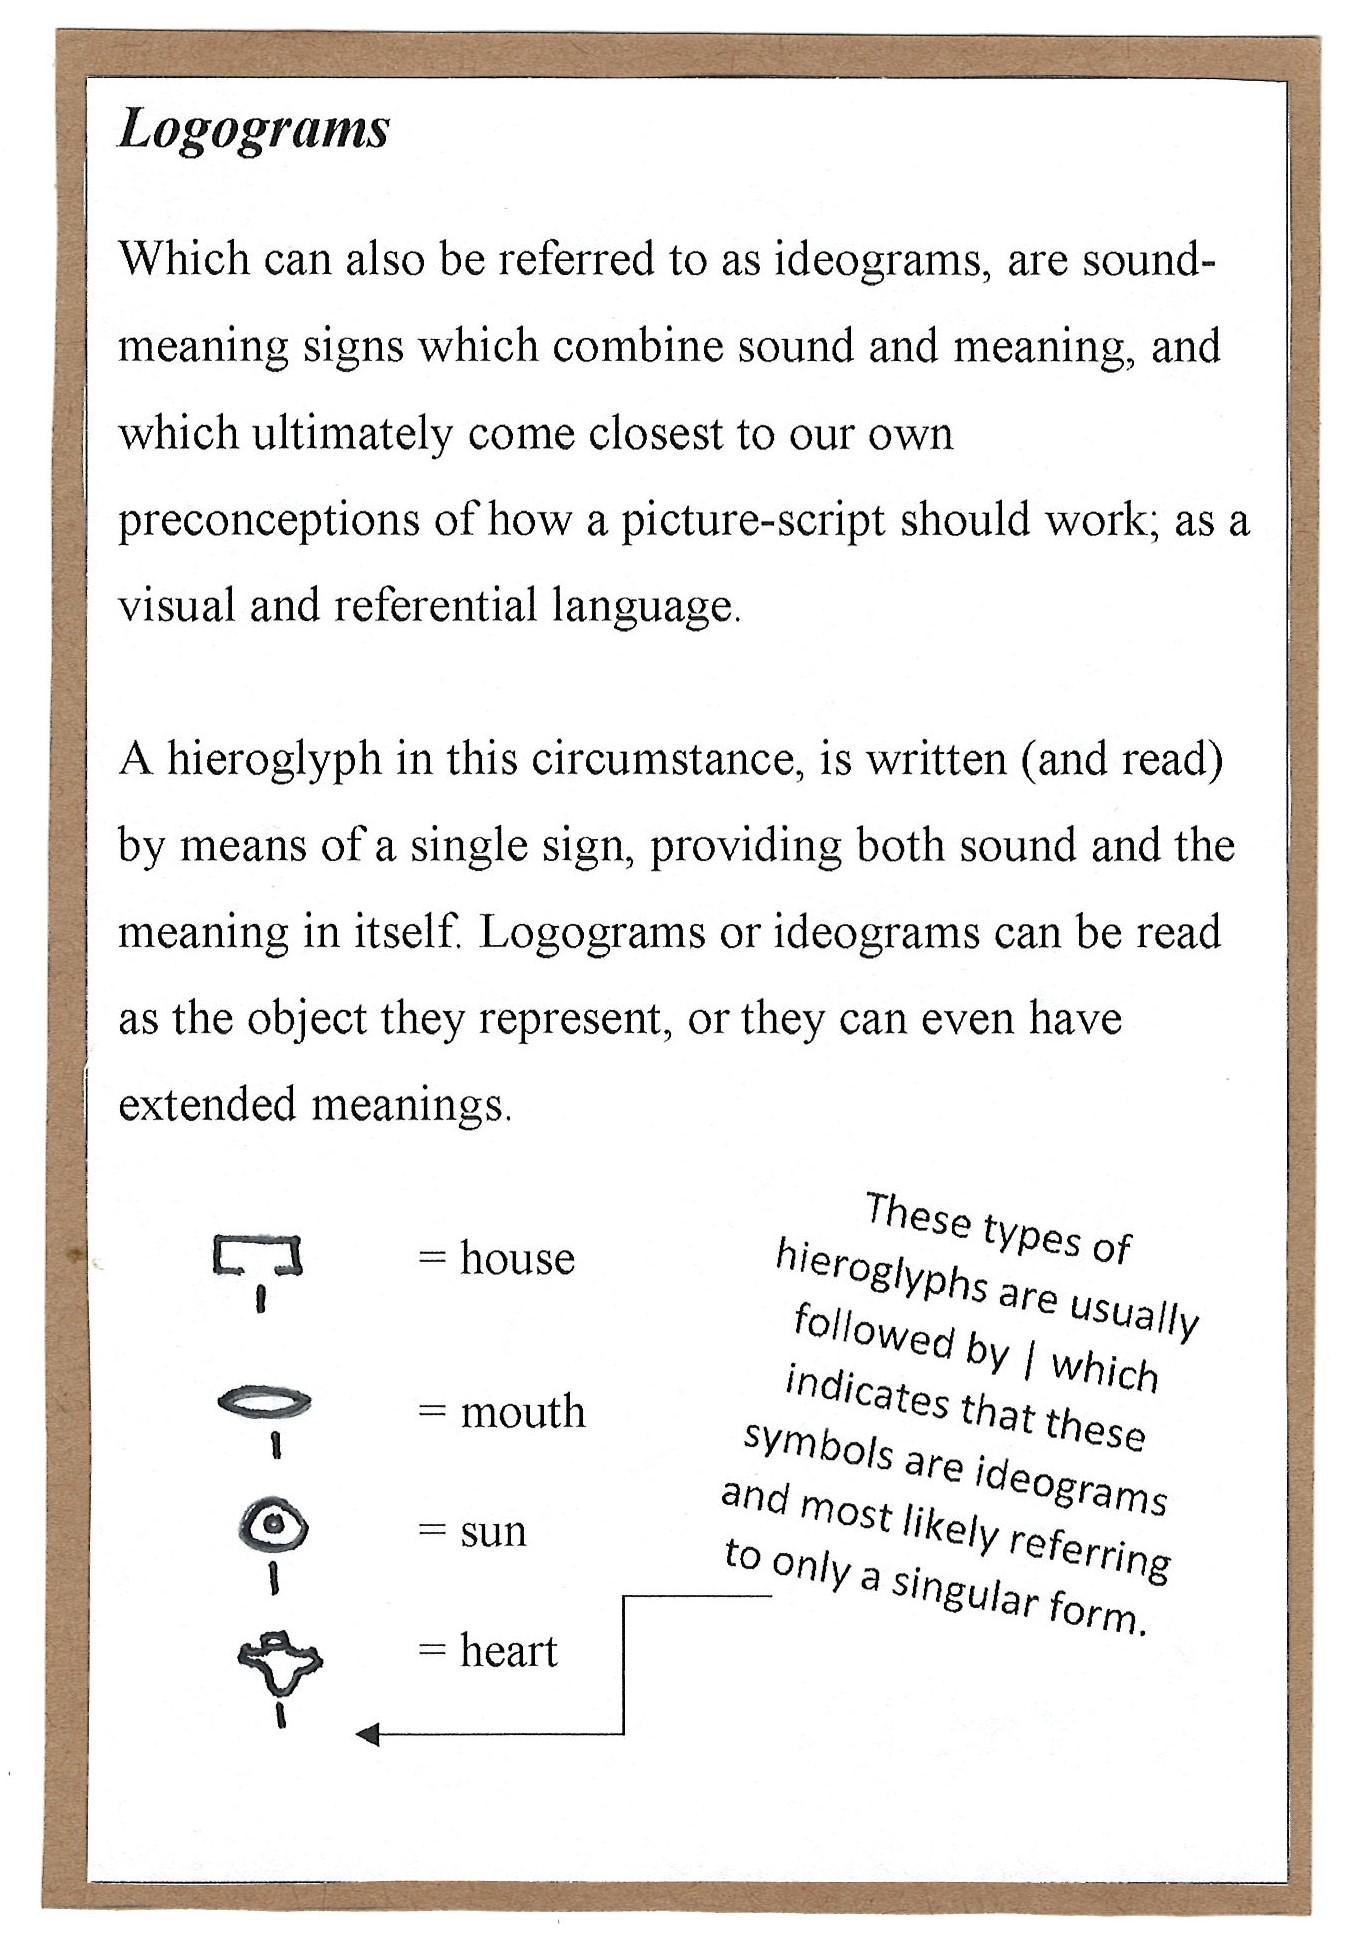 Page 2. Logograms, or ideograms and the ways in which pictures in the language can symbolize what they are a picture of.